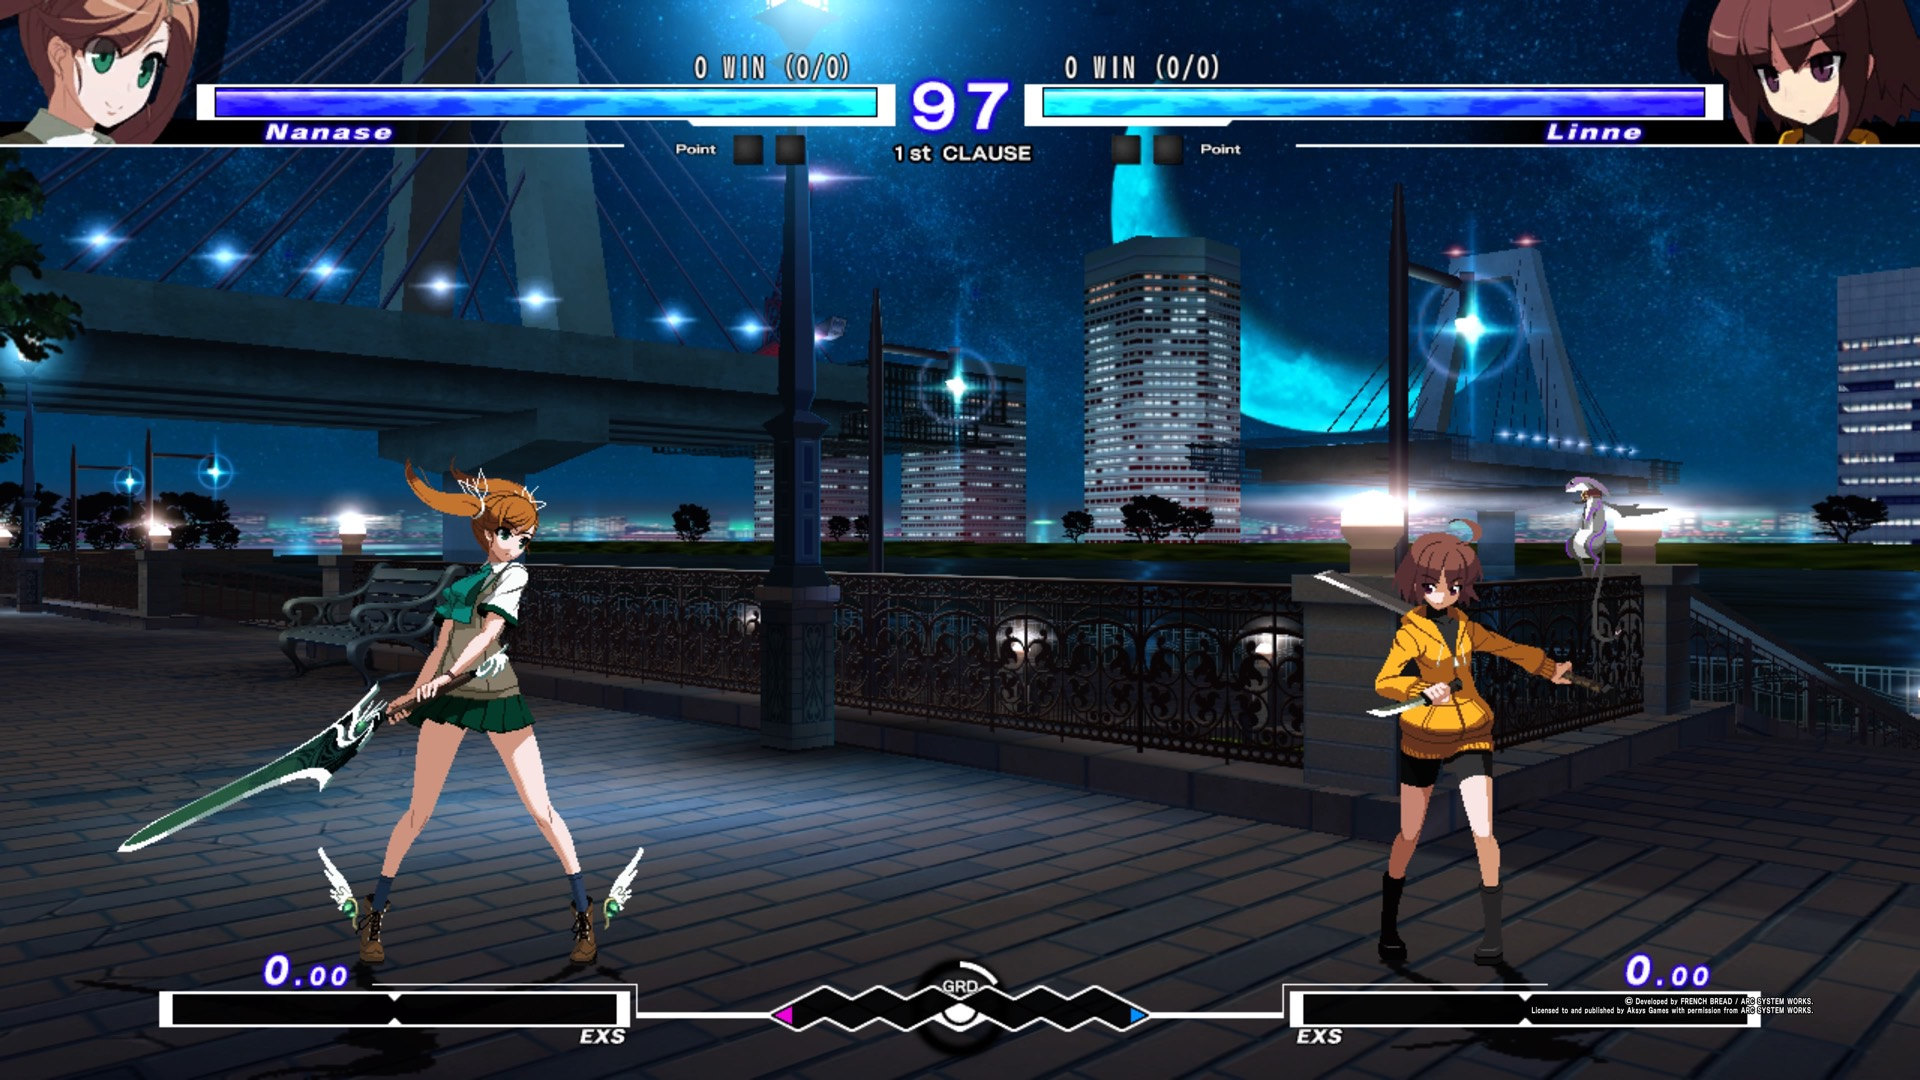 fg-reference-screens Gets a Christmas 2018 Update